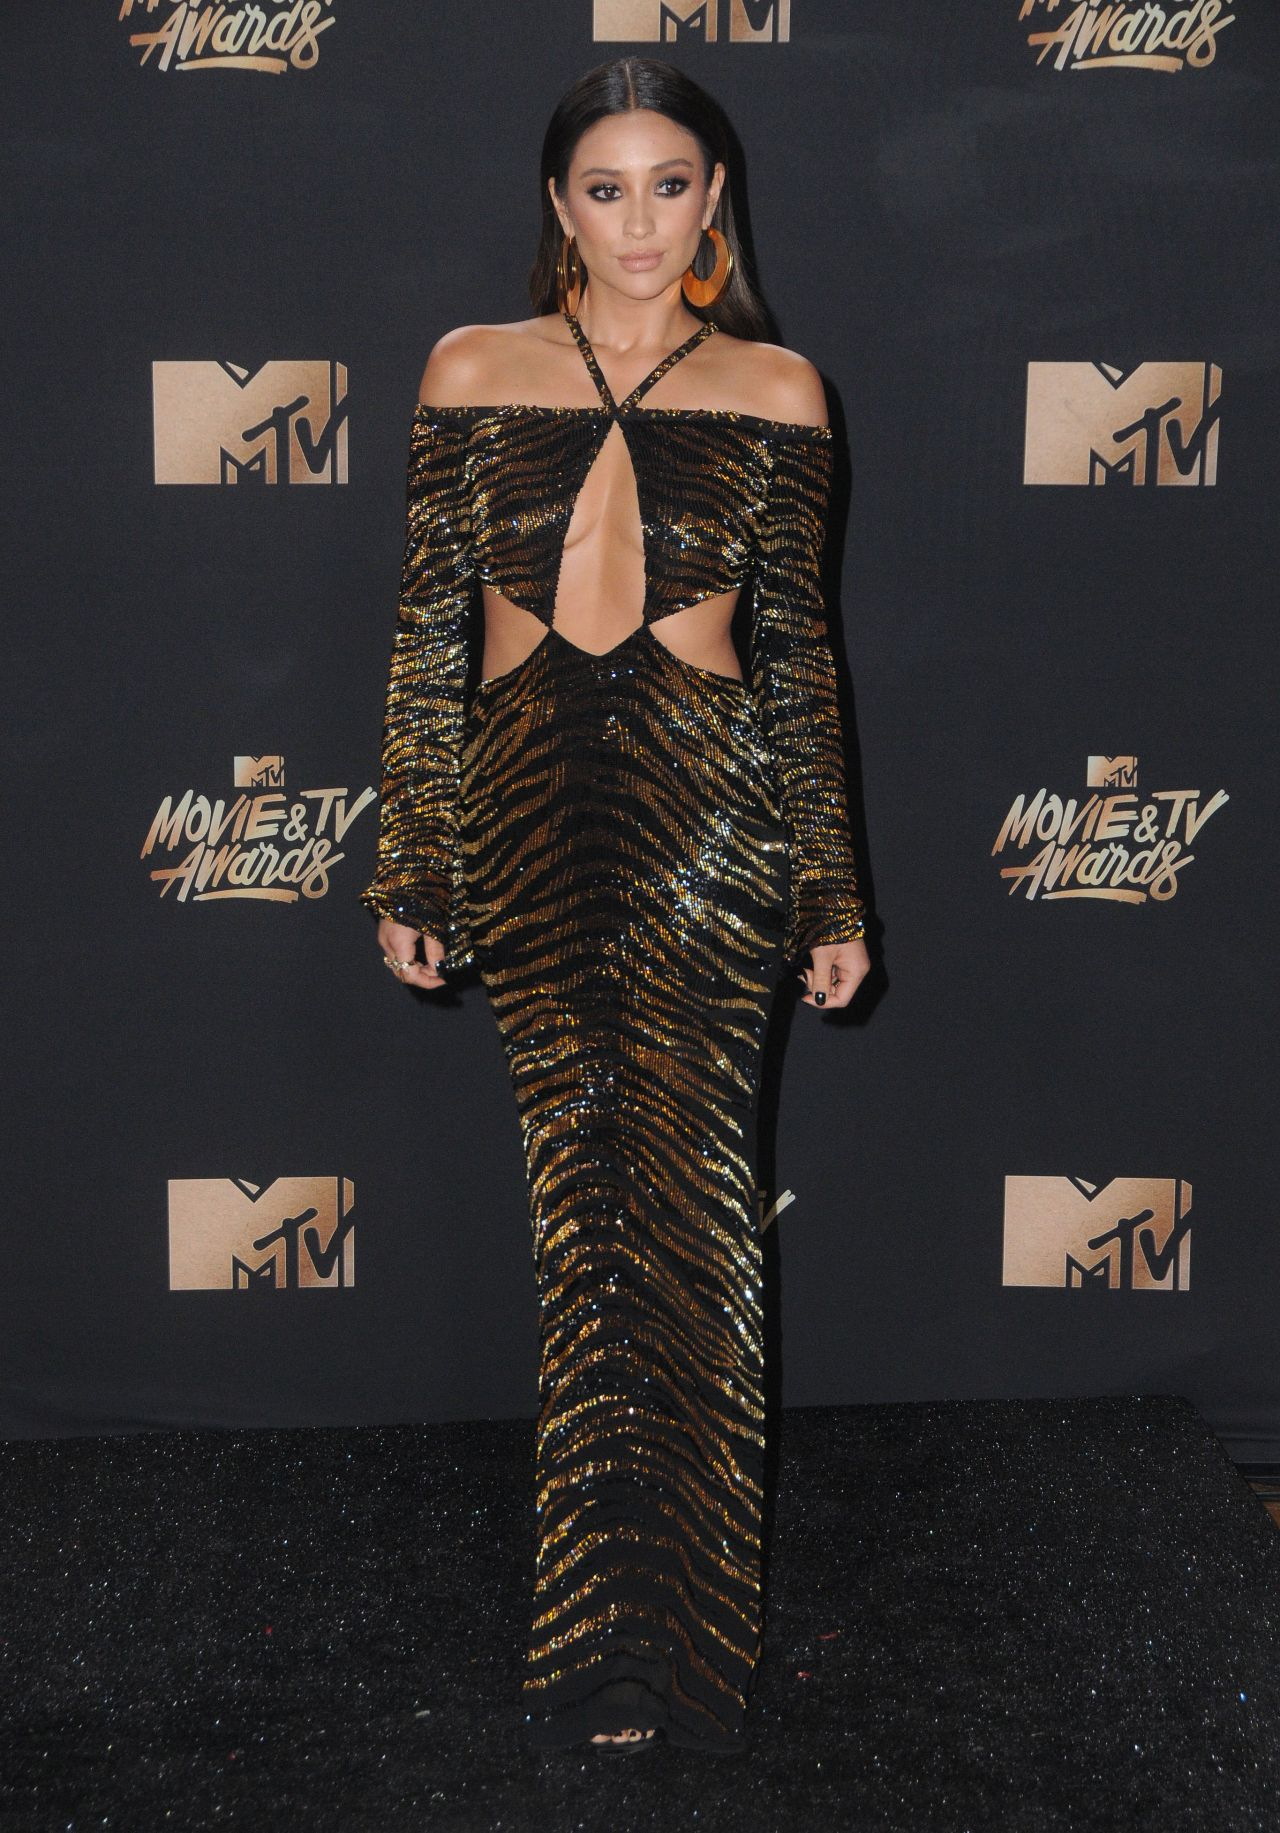 http://celebmafia.com/wp-content/uploads/2017/05/shay-mitchell-mtv-movie-and-tv-awards-in-los-angeles-05-07-2017-18.jpg